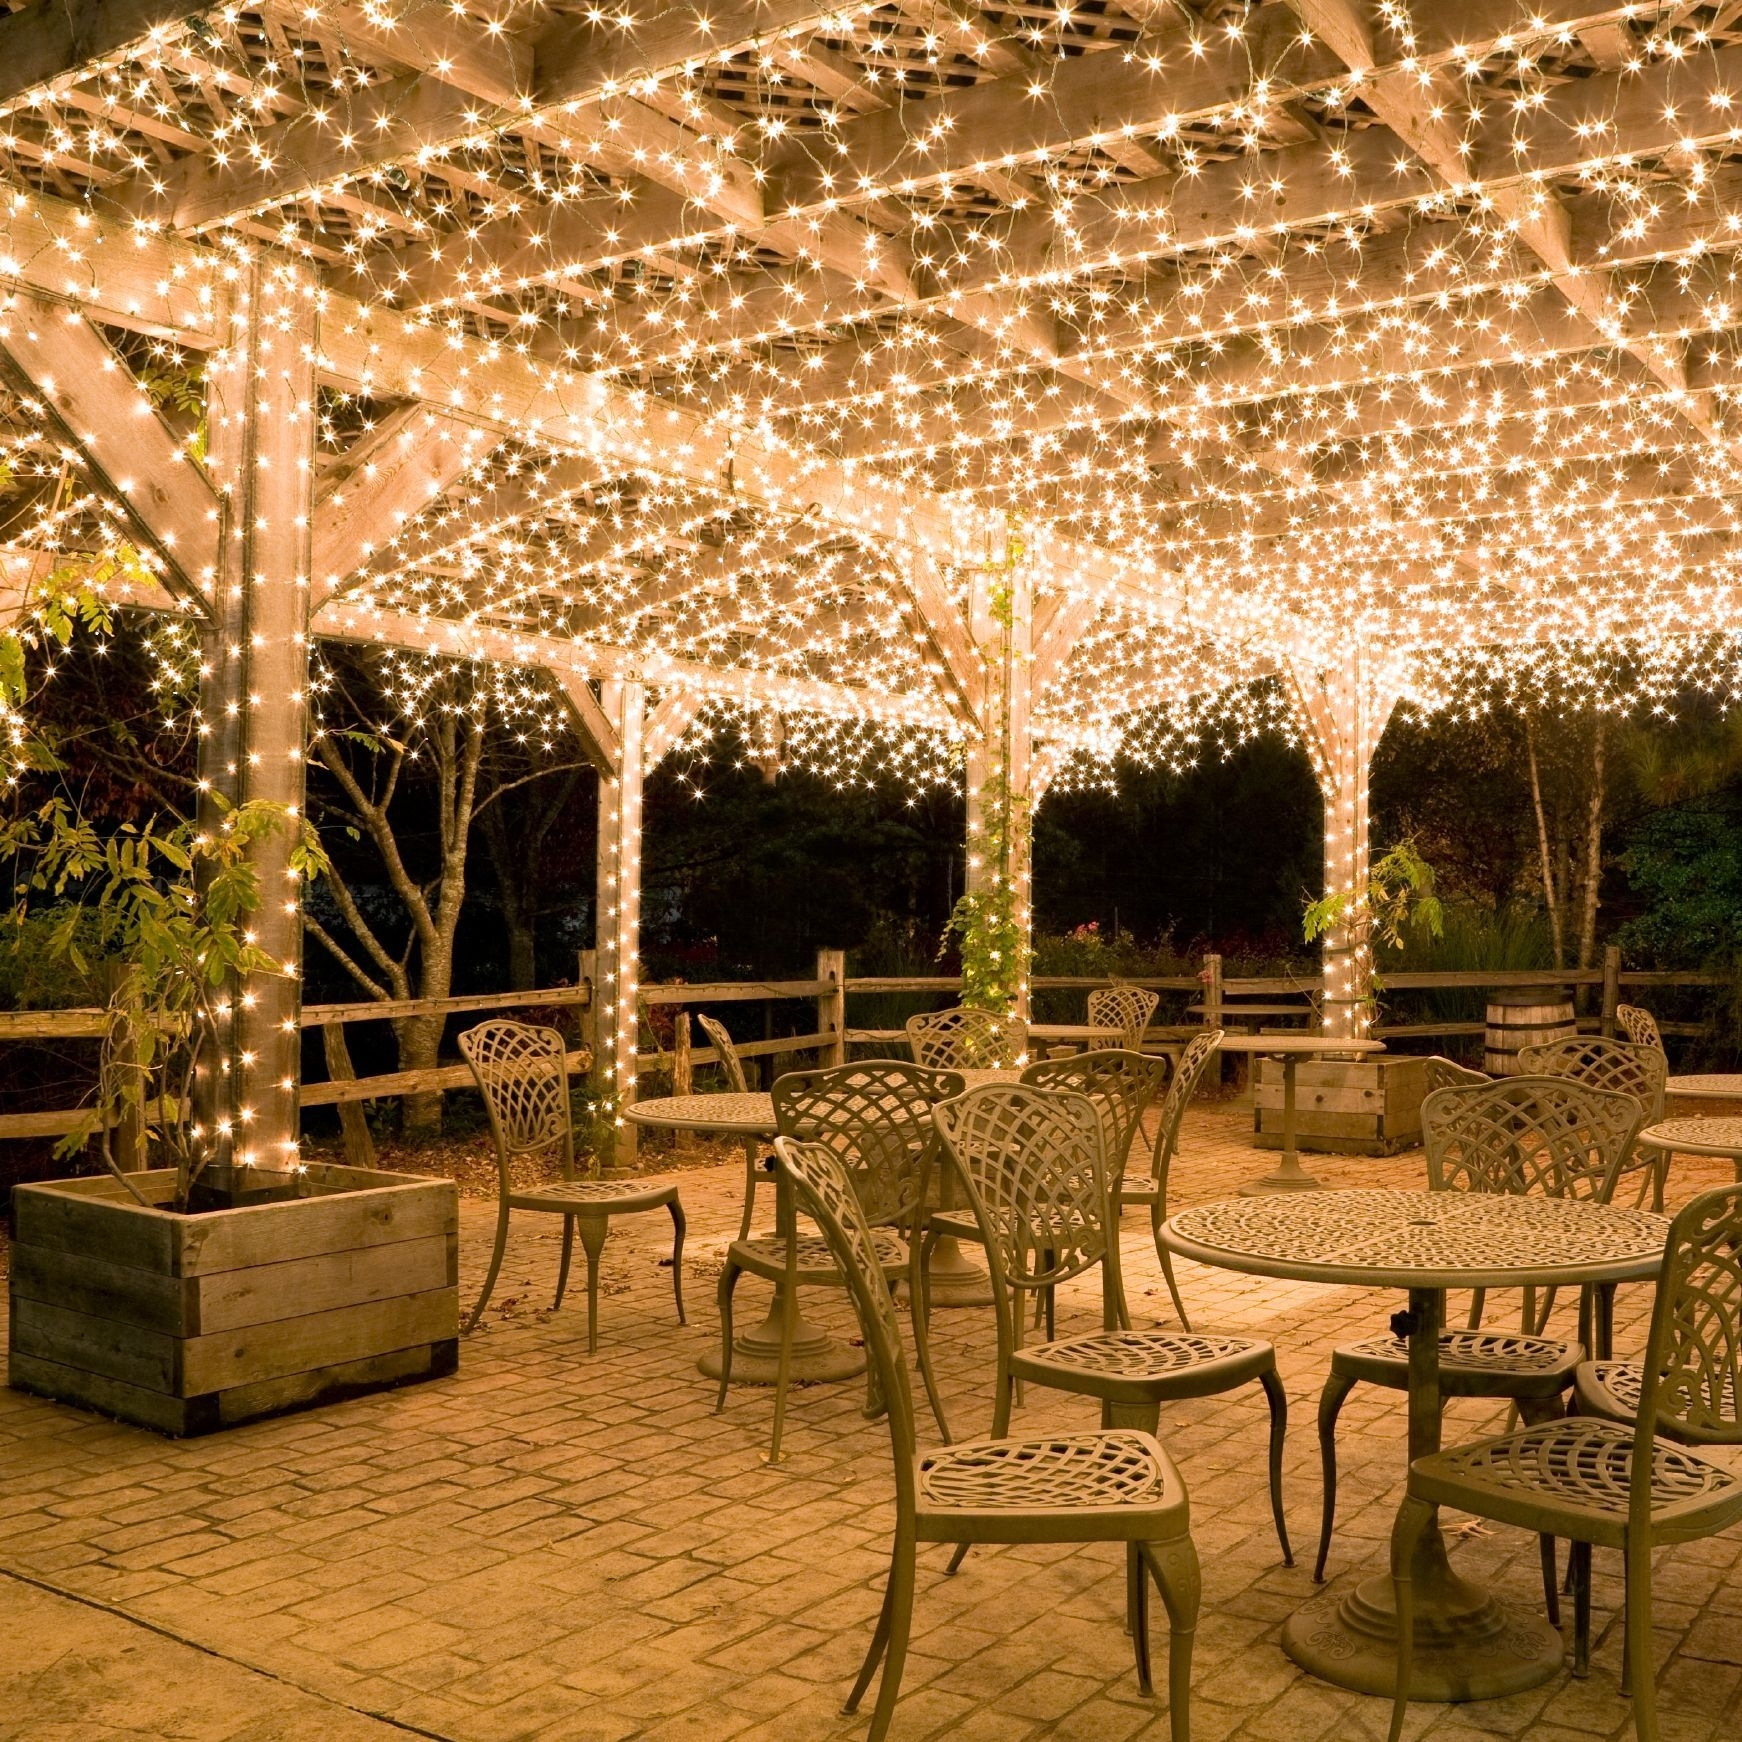 Hang White Icicle Lights To Create Magical Outdoor Lighting (#7 of 15)